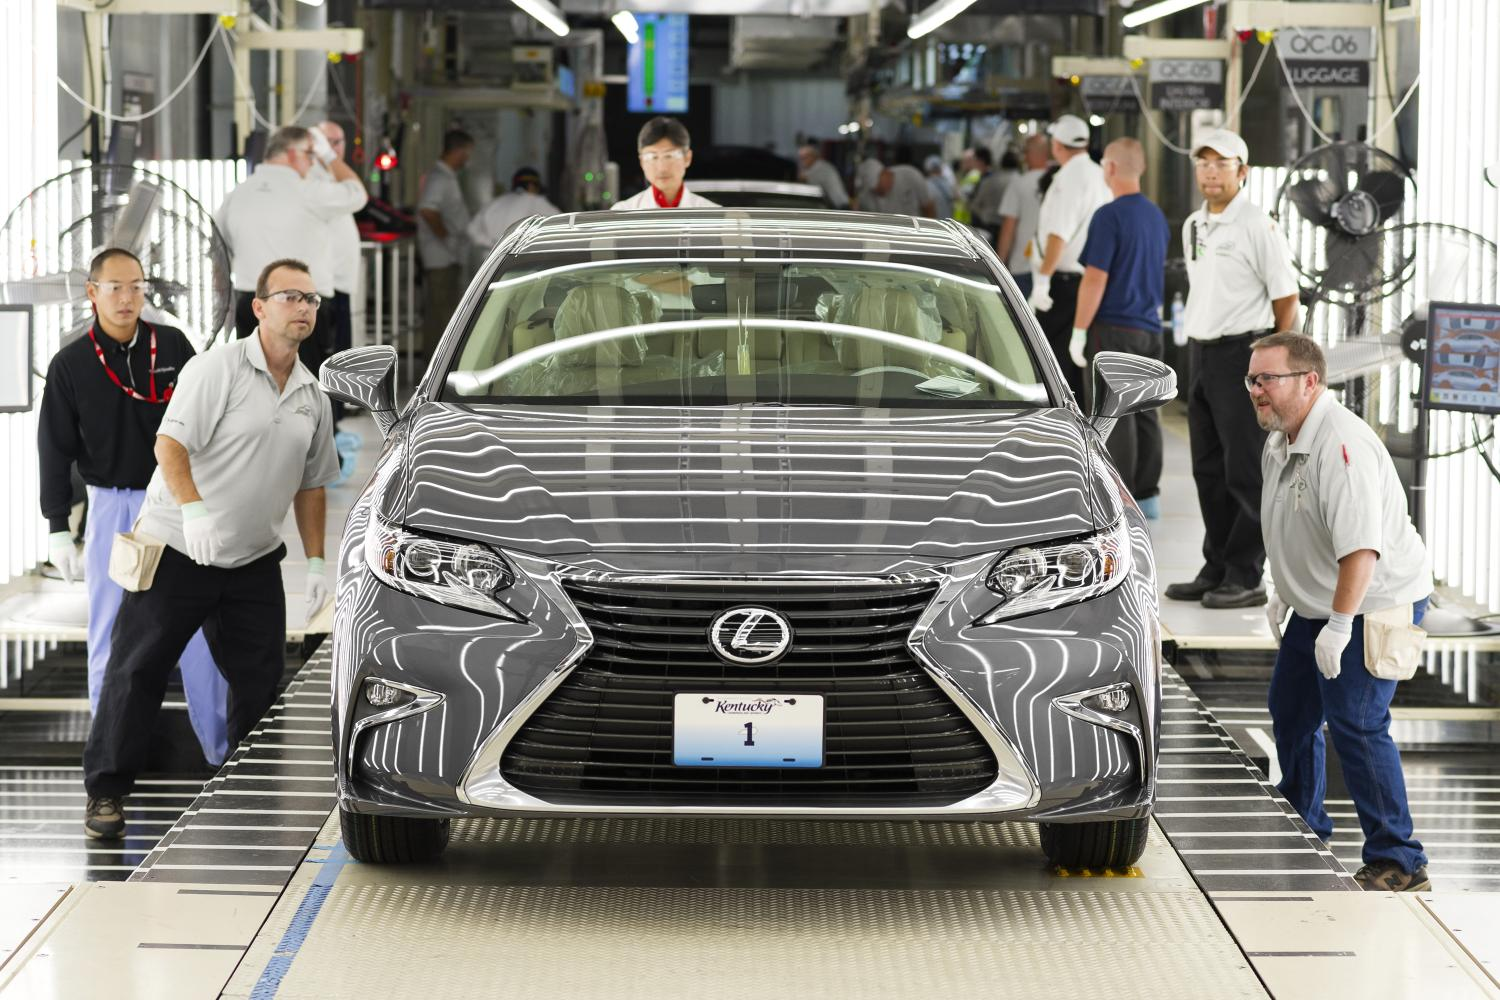 The First Lexus Ever Made in the US Rolled Off the Production Line ...